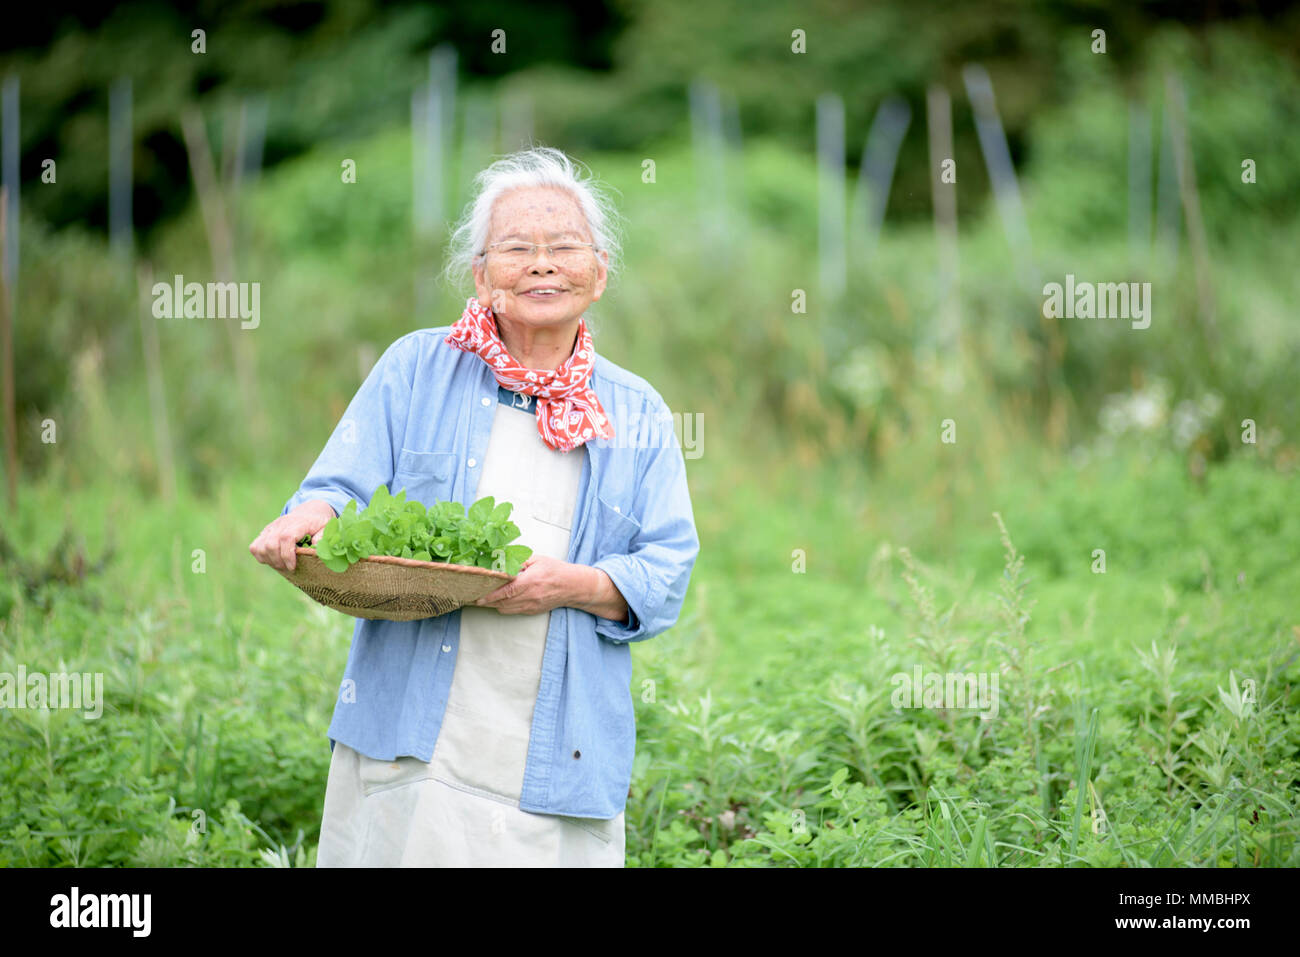 Elderly woman with grey hair standing in a garden, holding basket with fresh vegetables, smiling at camera. - Stock Image